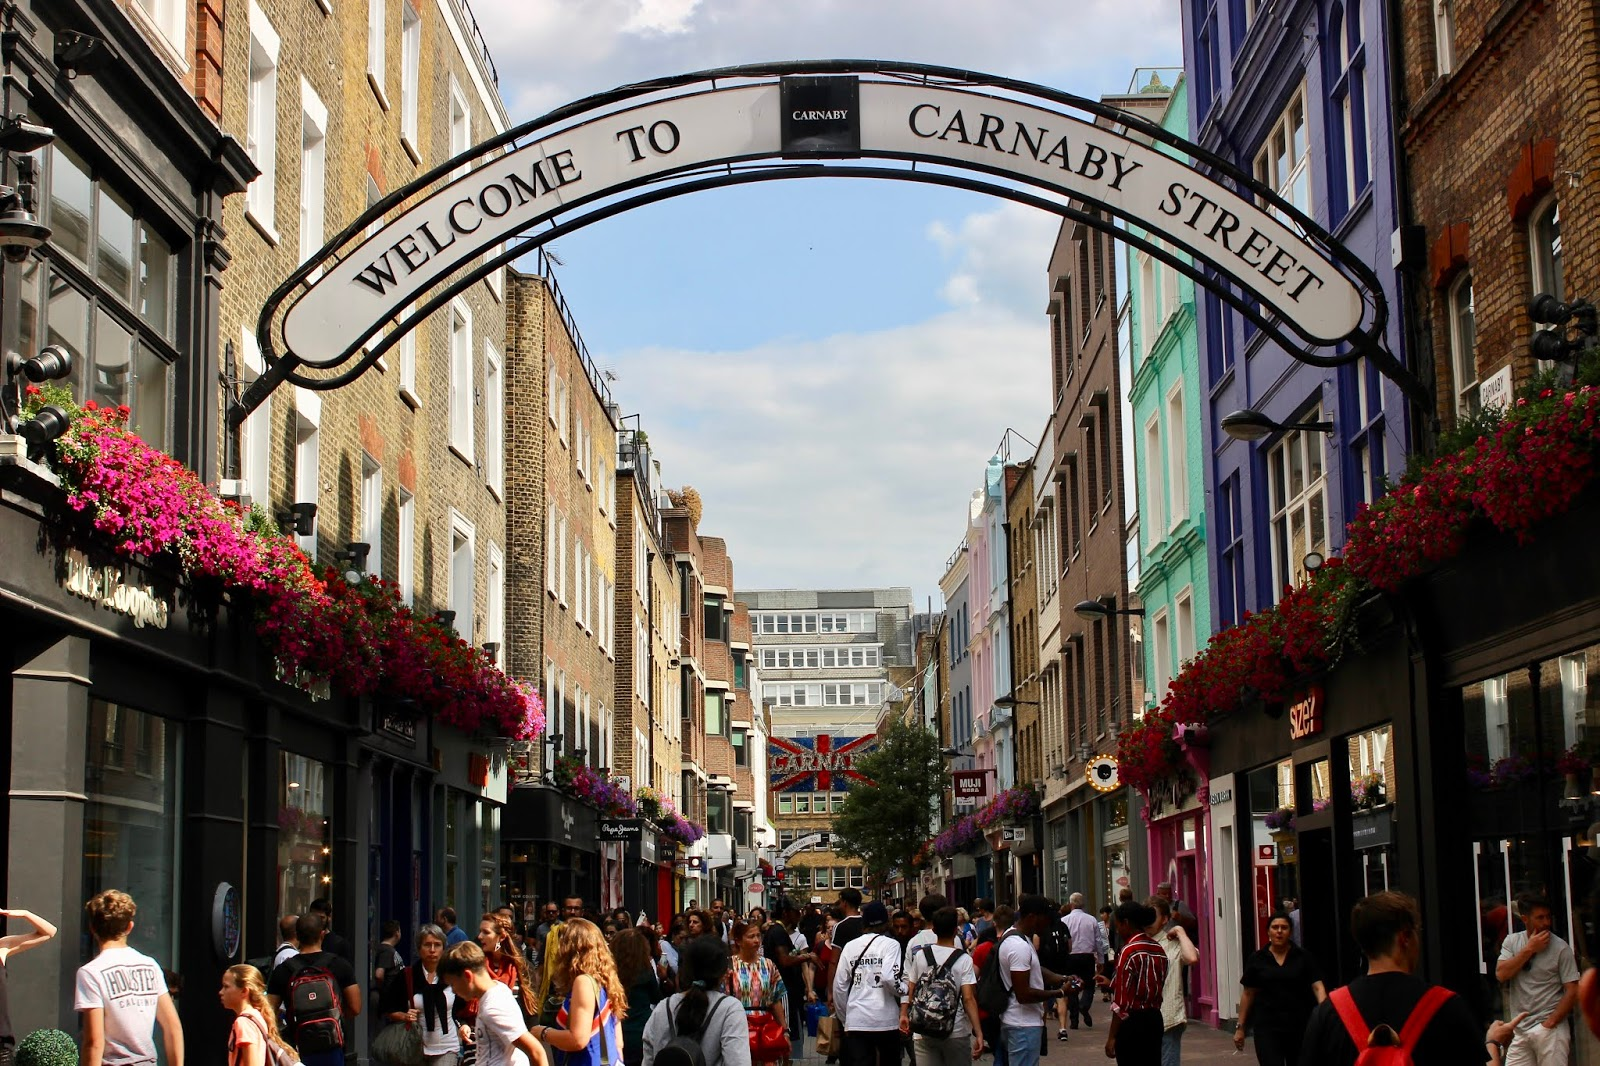 Image of 'Welcome to Carnaby Street' street sign